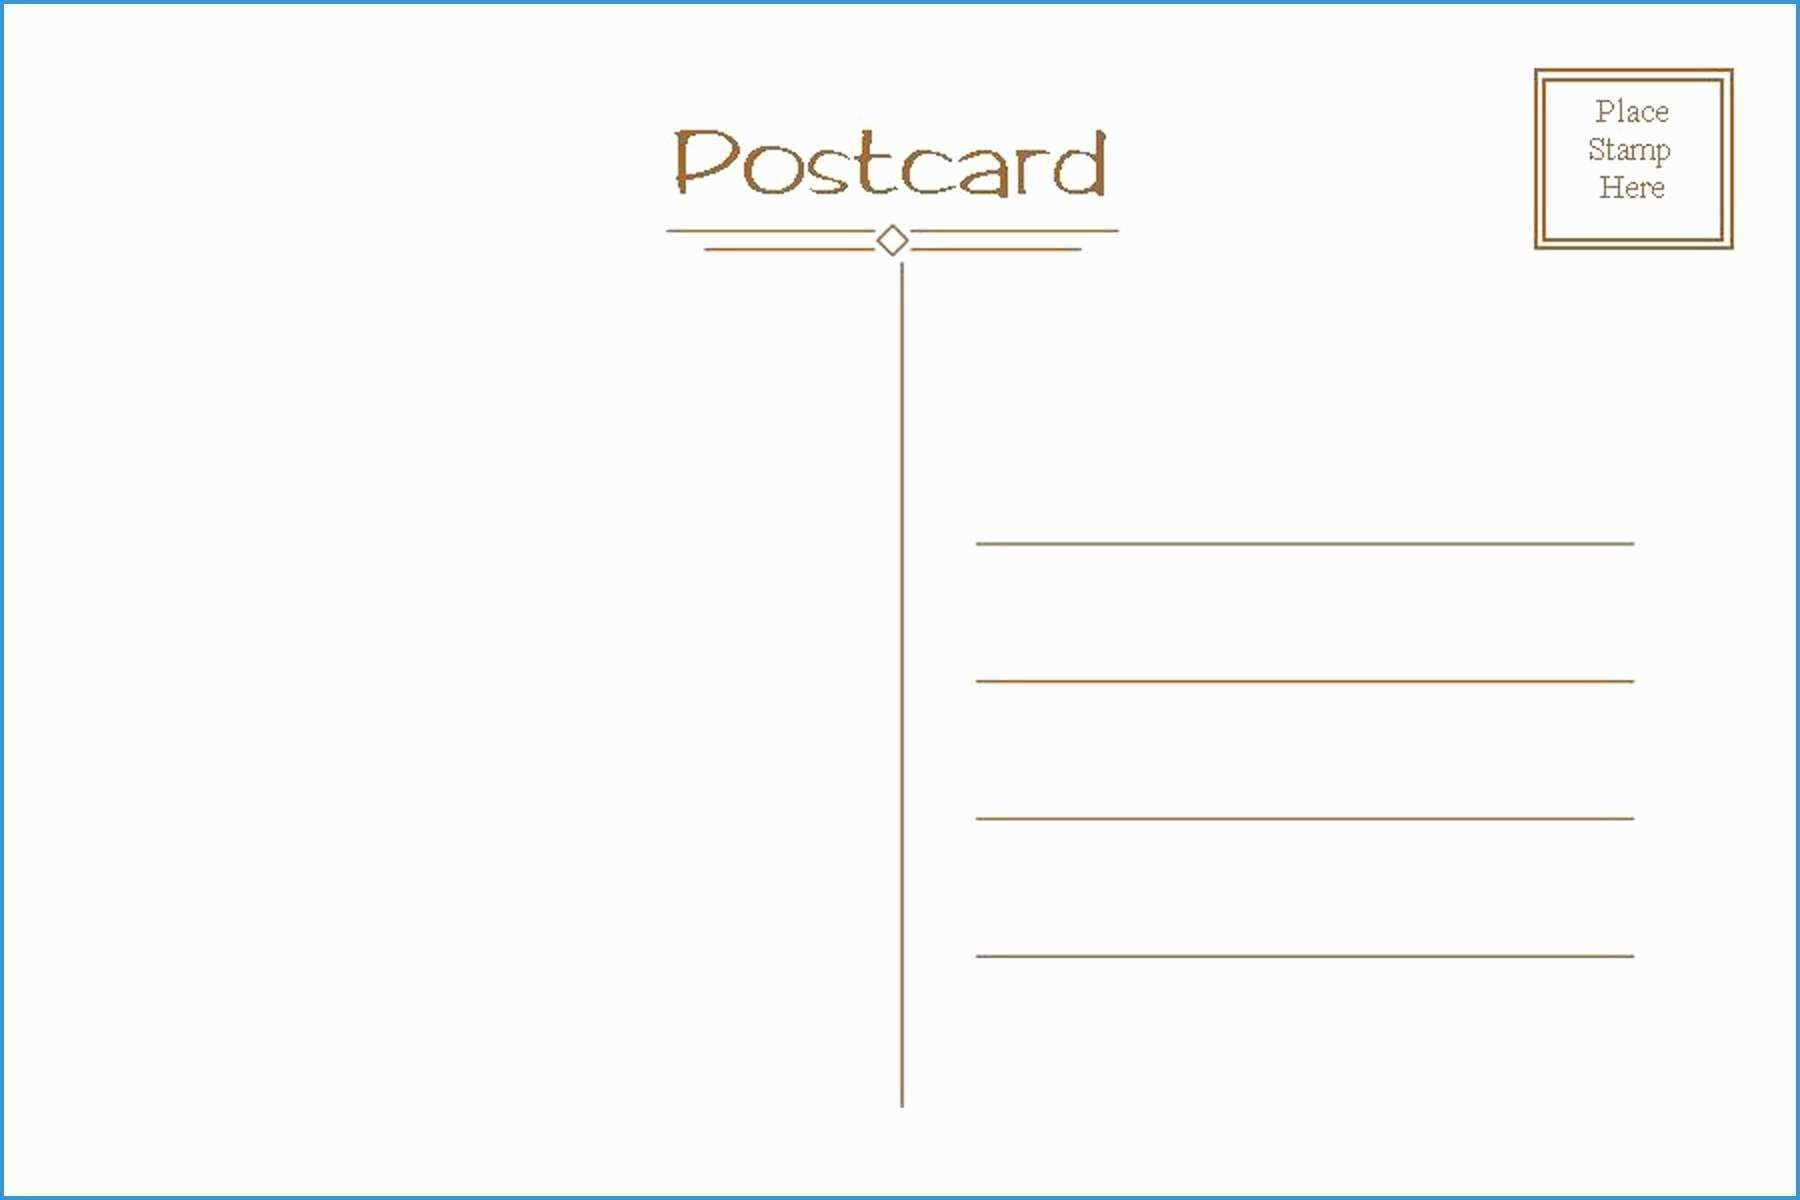 007 Sensational Free Postcard Template For Word Highest Clarity  Printable Christma Place Card 4x6Full